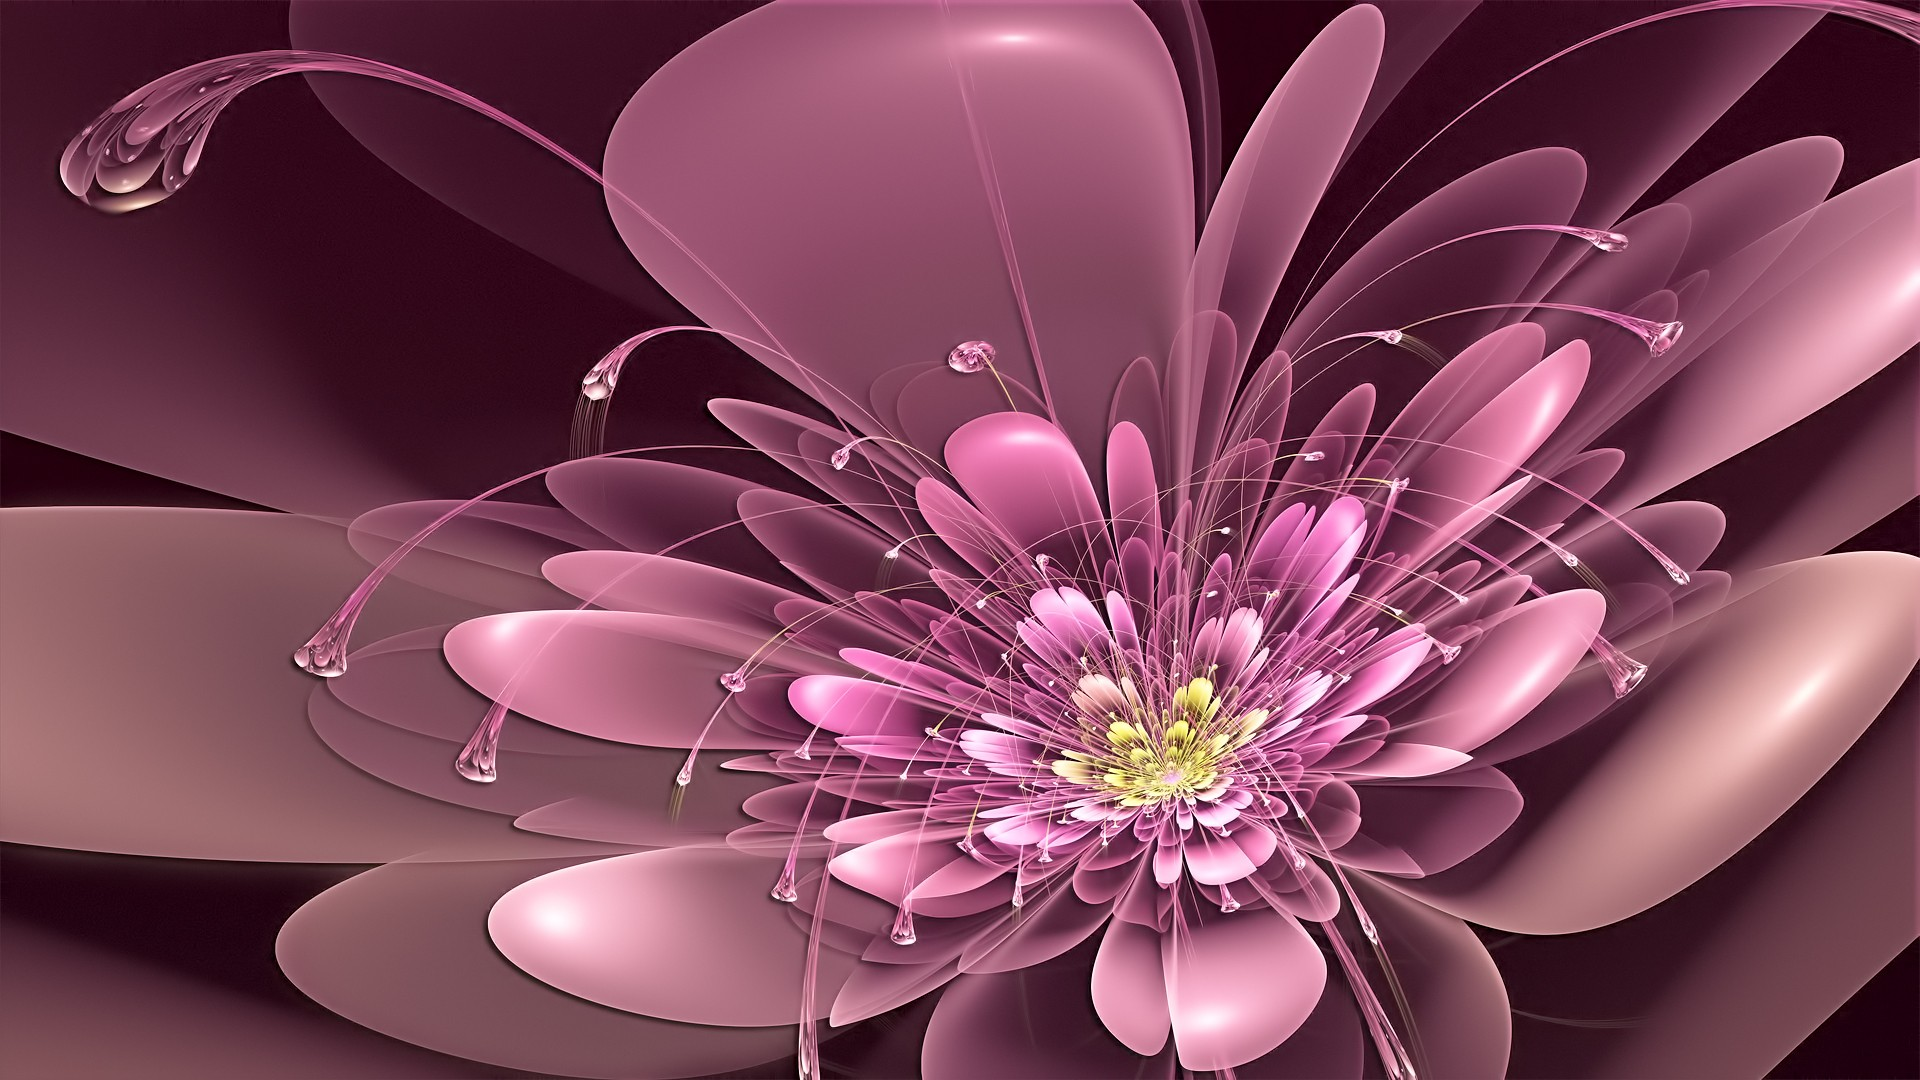 Abstract Wallpaper Pics Of Love Flowers Wallpaper